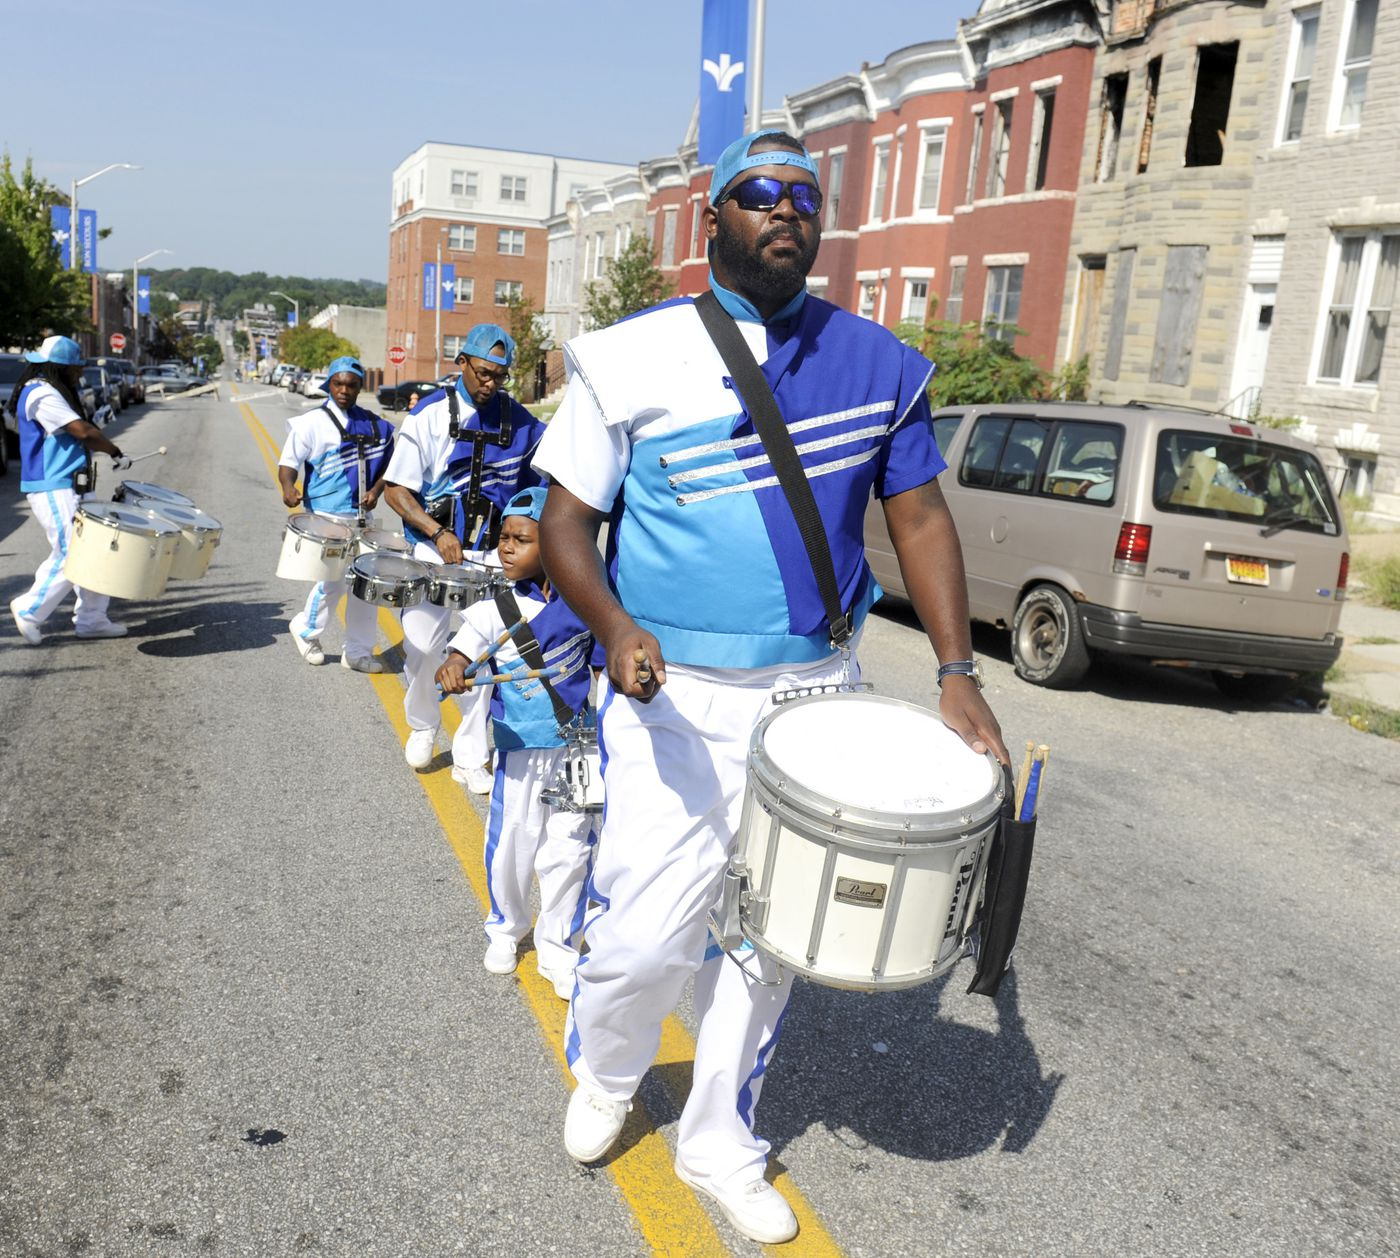 West Baltimore marching band shapes the next generation of